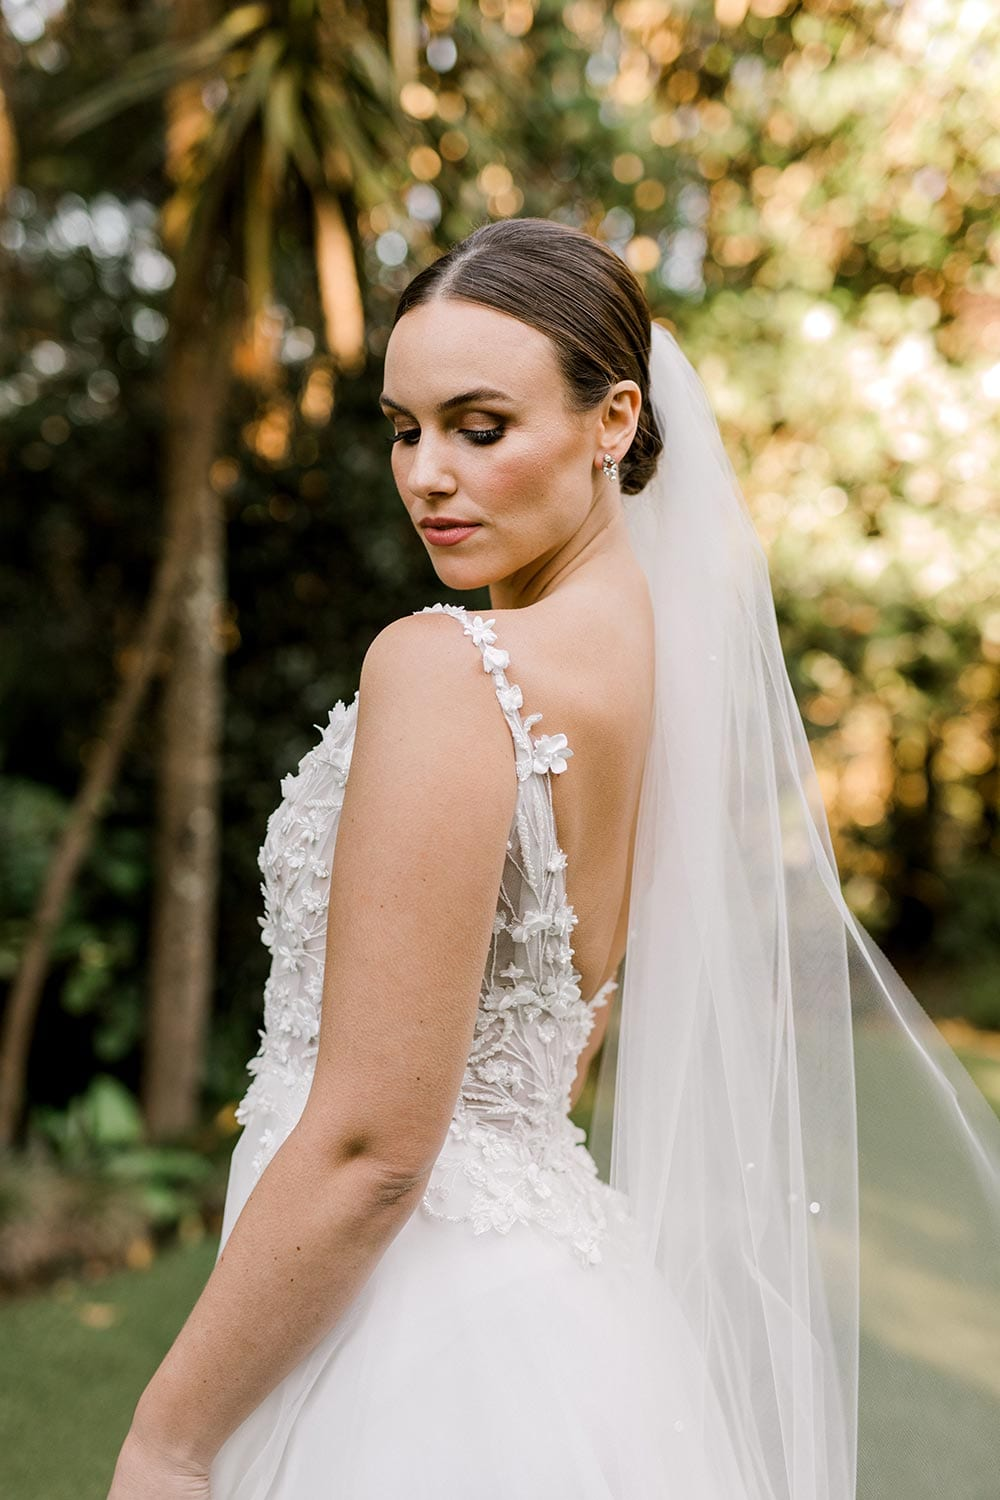 Serena Wedding Gown from Vinka Design - Classic & feminine wedding gown. Deep V-neckline semi-sheer structured bodice appliqued with flowers & leaves. Dreamy layered soft tulle skirt with side-split. Side detail of dress. Photograph in landscaped gardens.